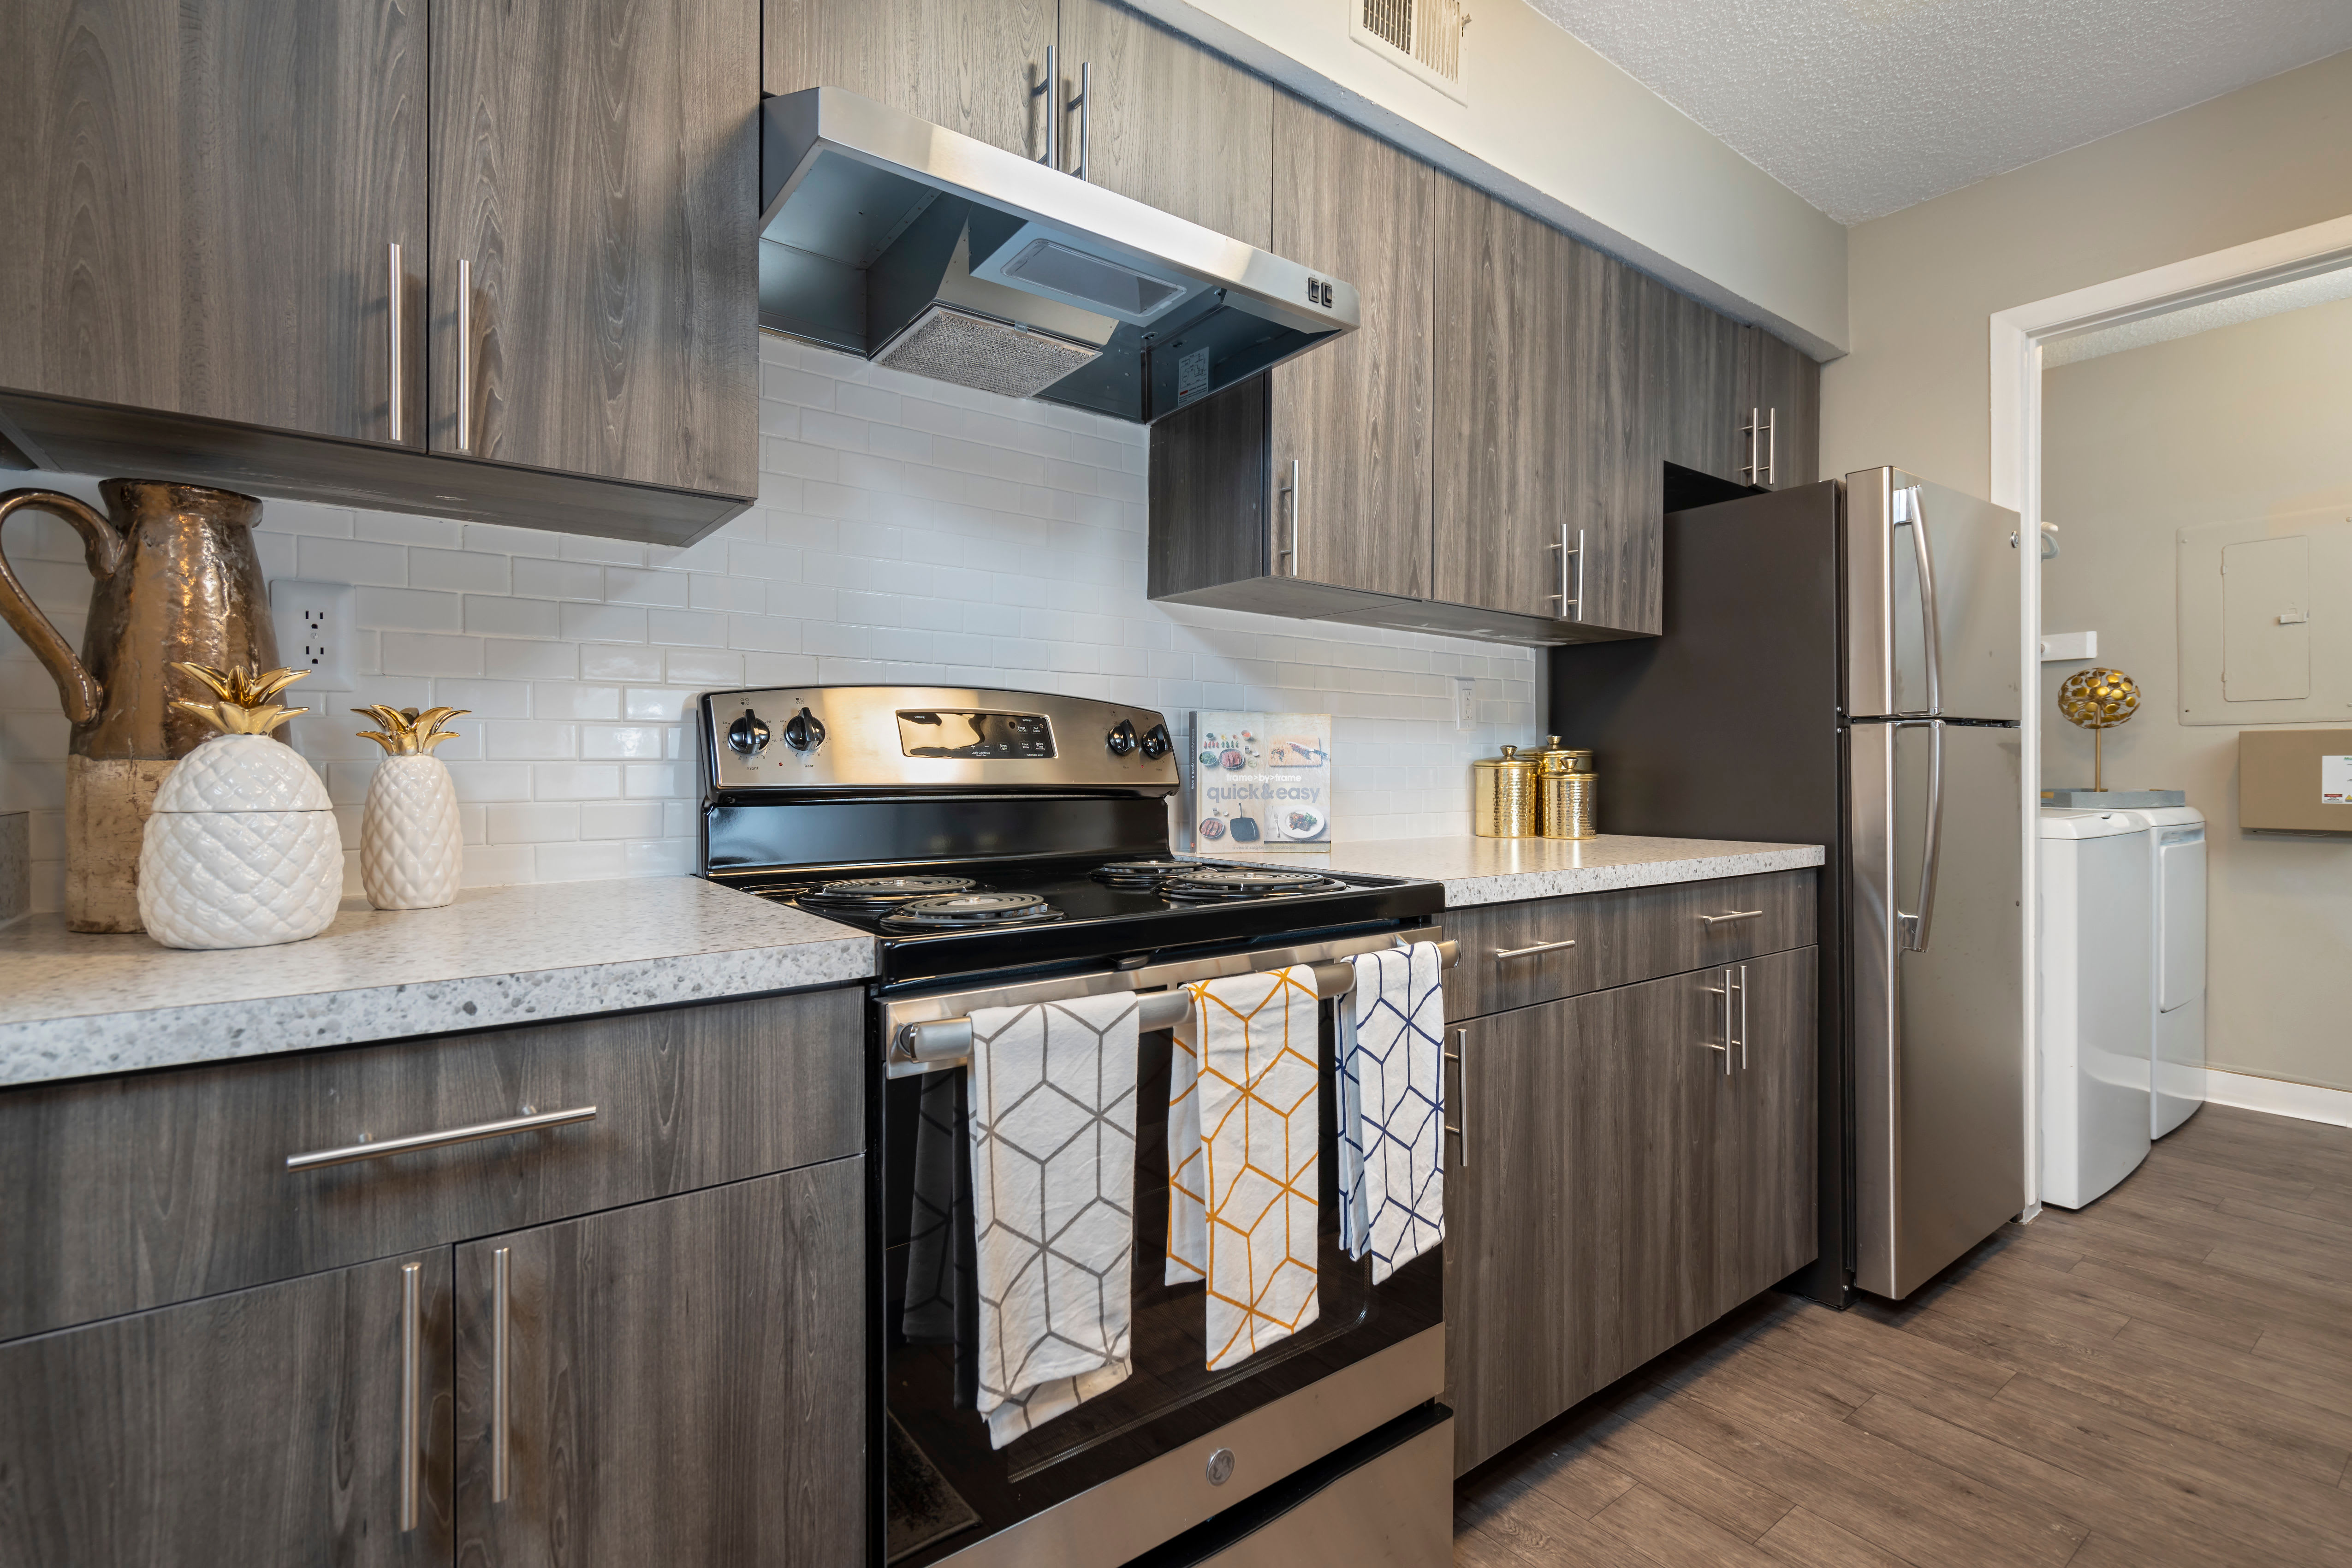 We have floor plan options to suit just about anyone's needs at Hamptons of Cloverlane Apartments.